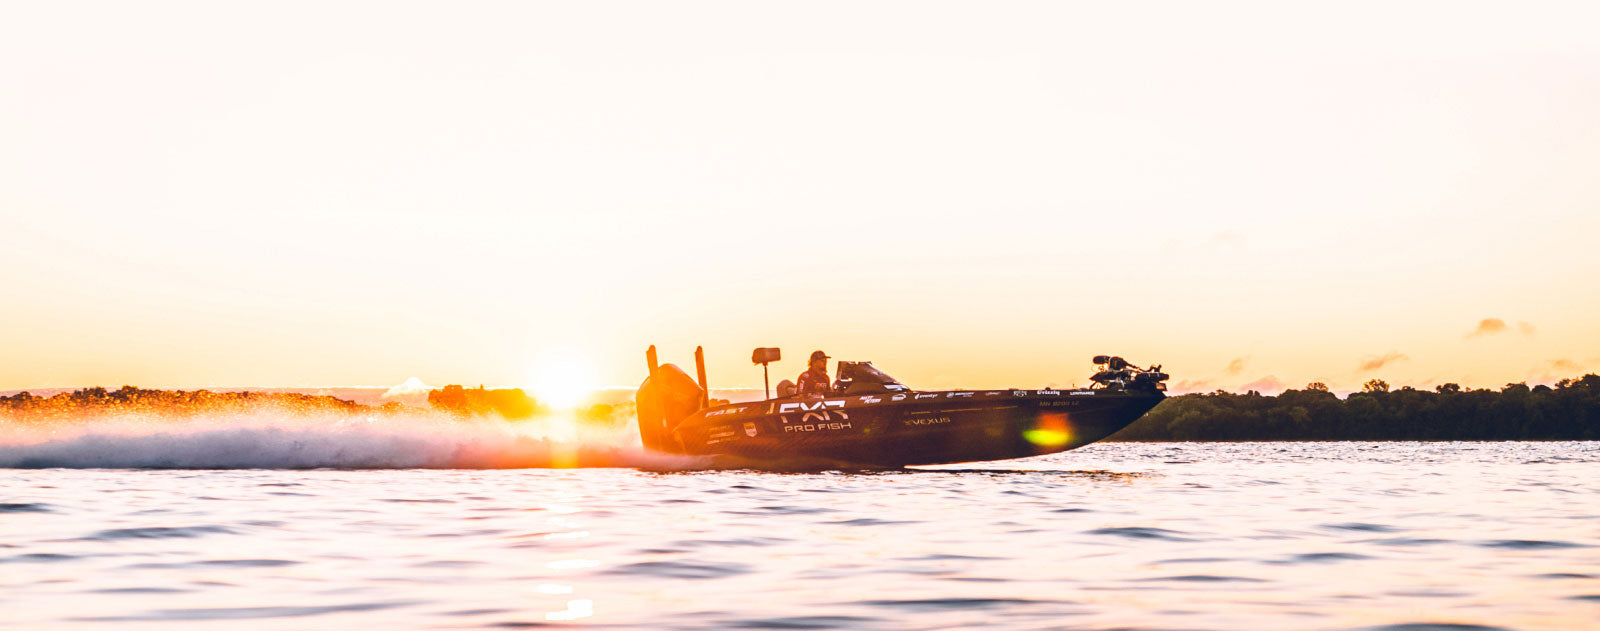 Image of a custom wrapped Pro Fish Vexus bass boat on plane racing across a lake with a sunset in the distance.